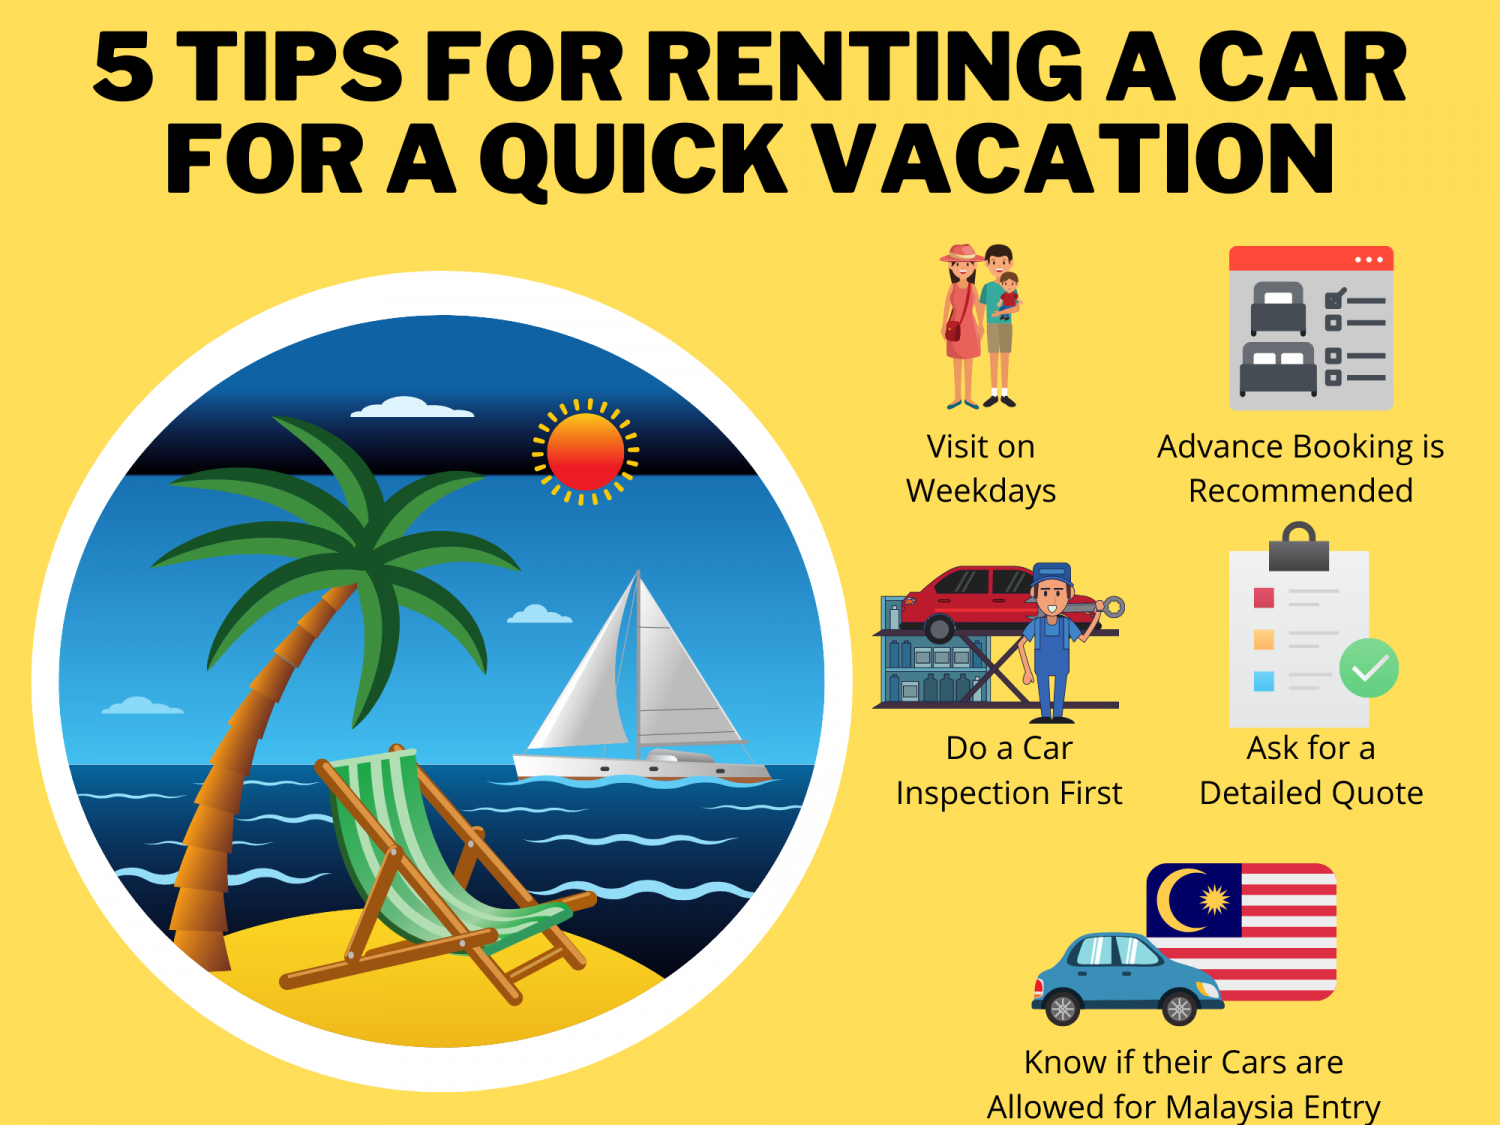 5 Tips for Renting a Car for a Quick Vacation Infographic